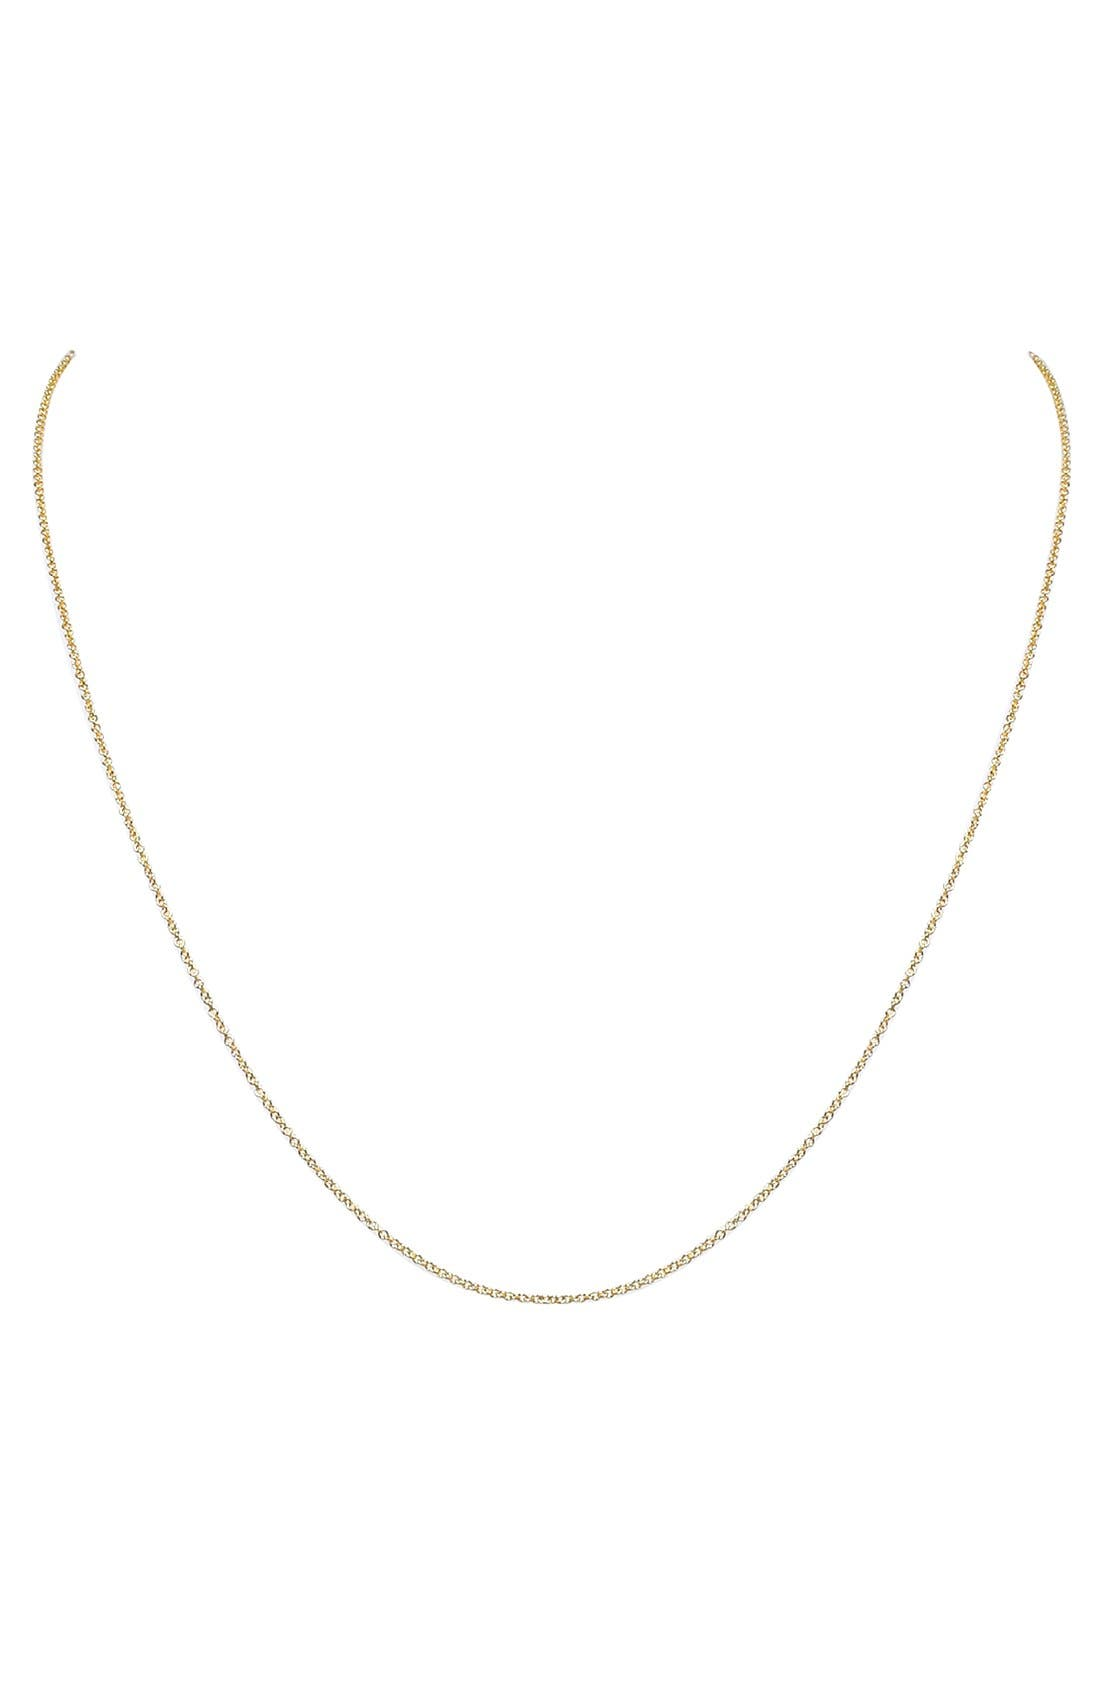 Main Image - Bony Levy Chain Necklace (Nordstrom Exclusive)